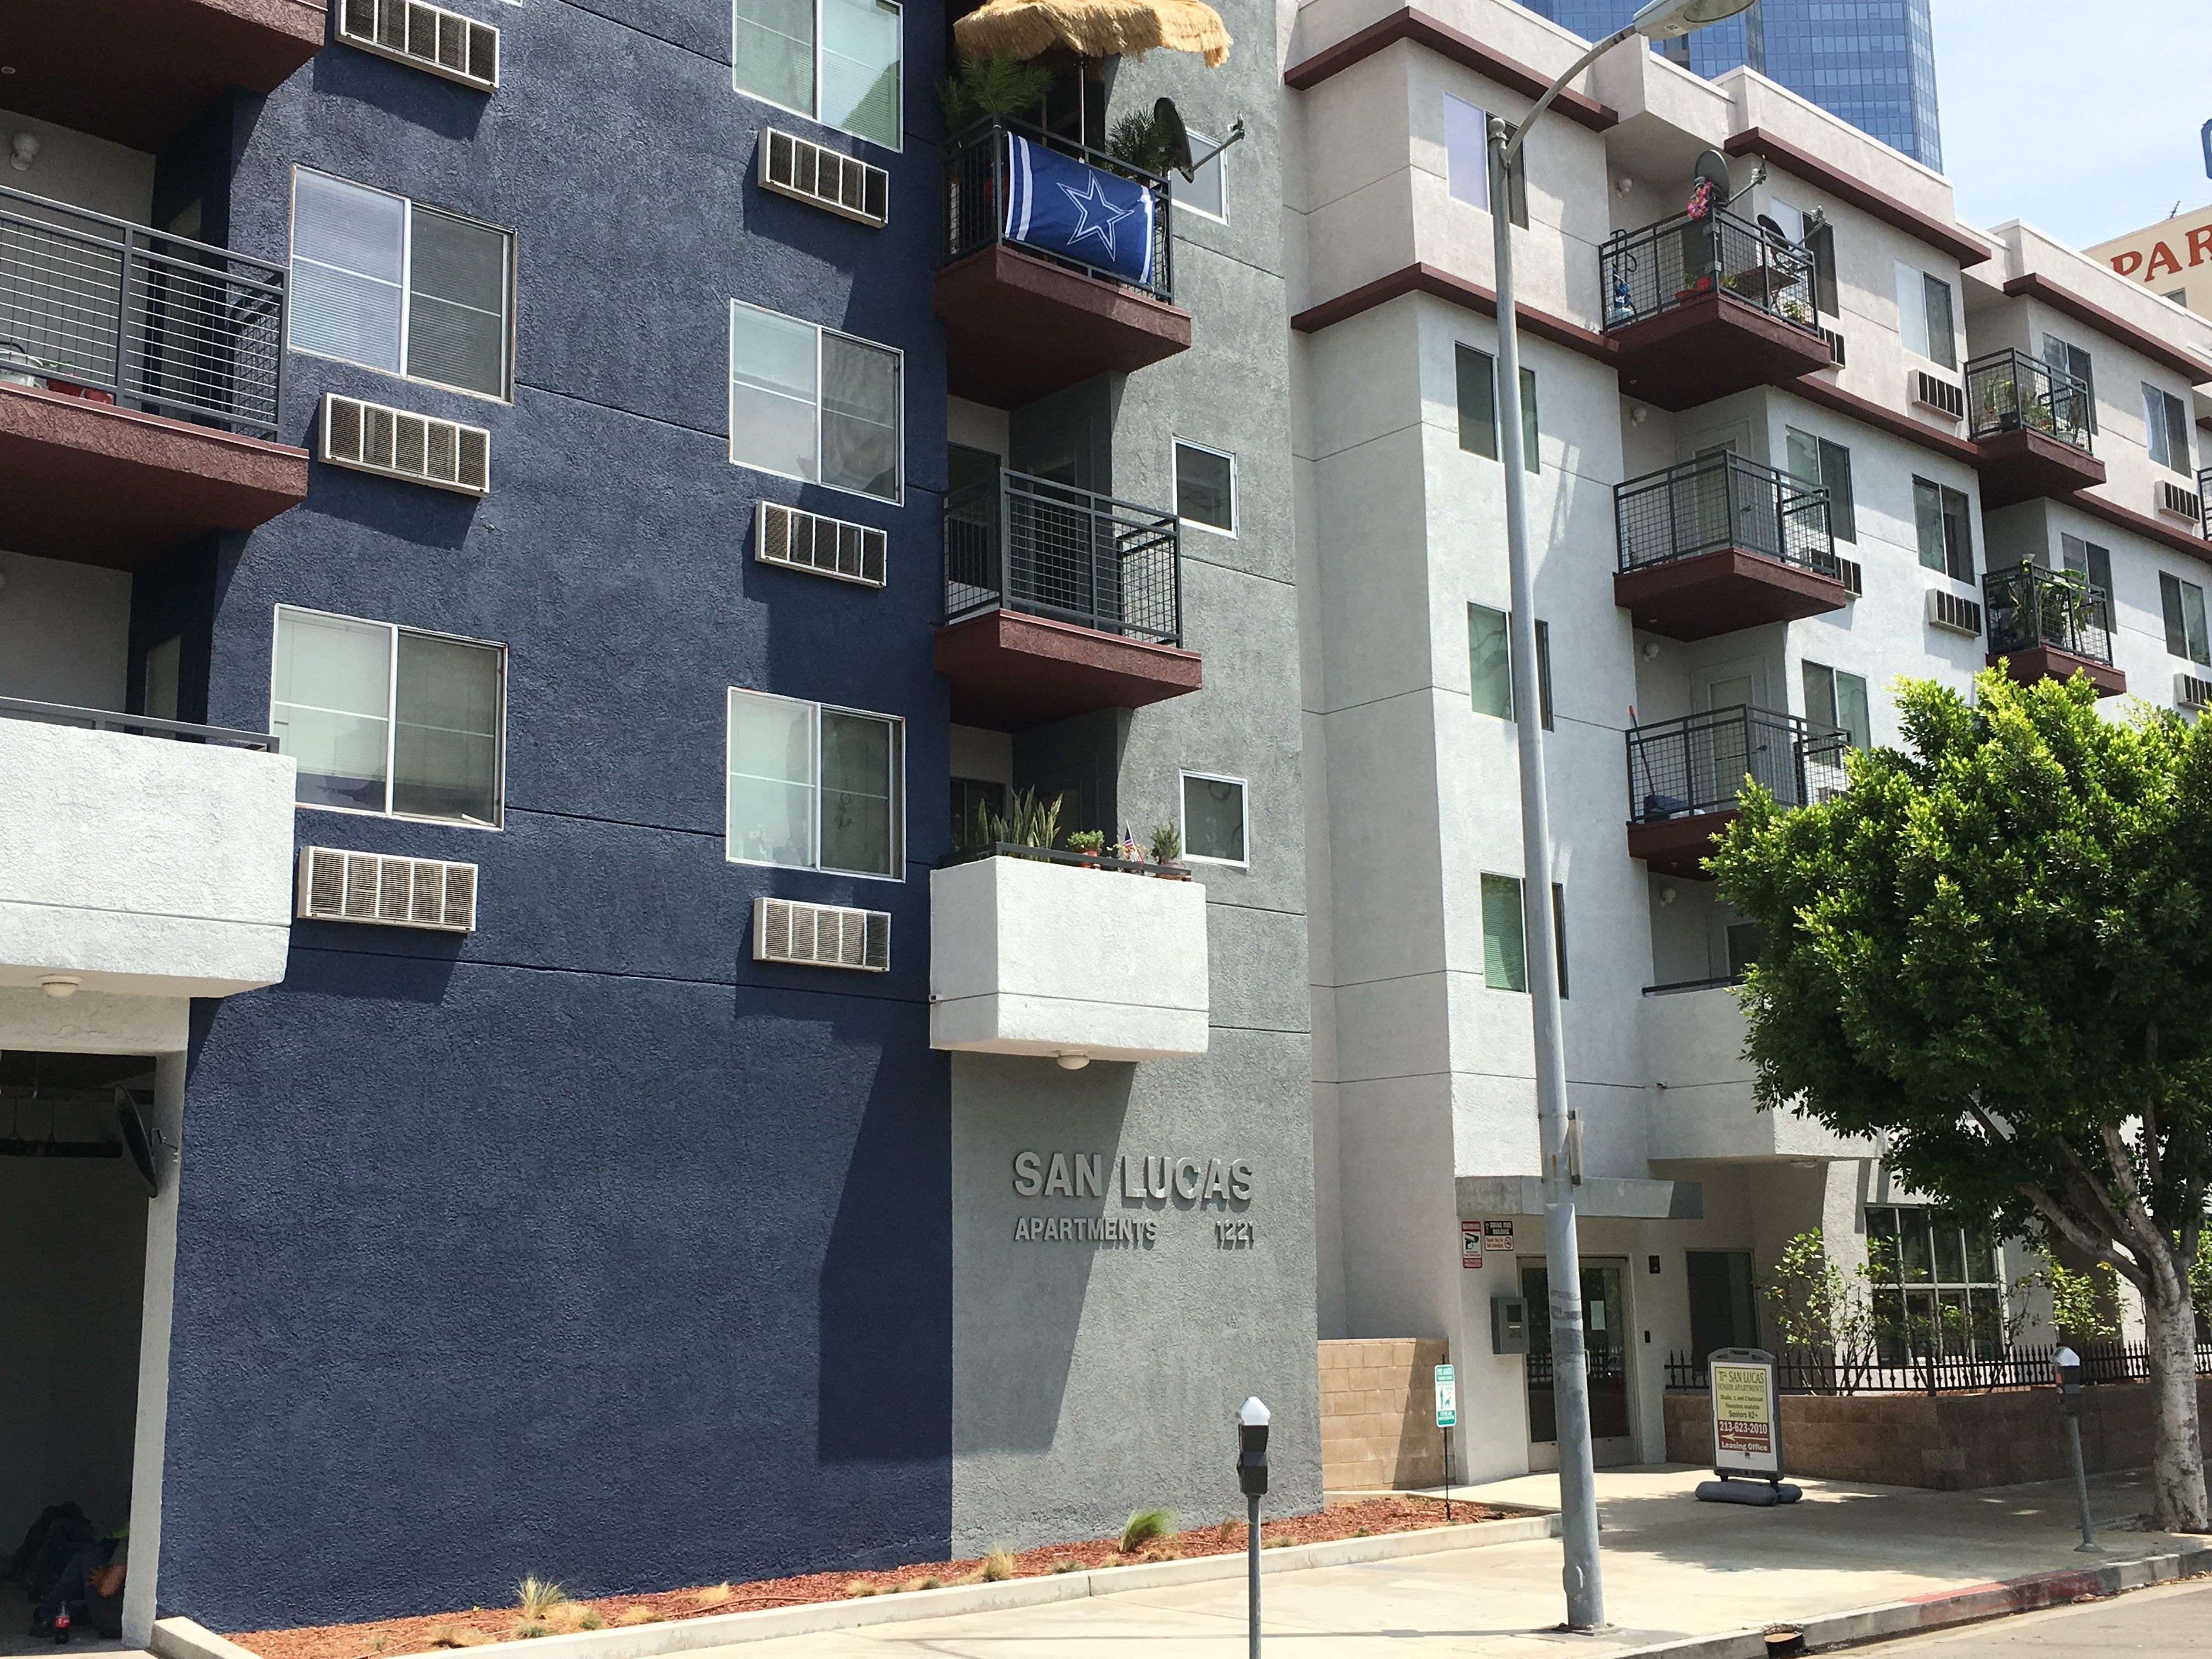 Street view of San Lucas Apartments, 5 story grey and blue building with balconies and lamp post in front